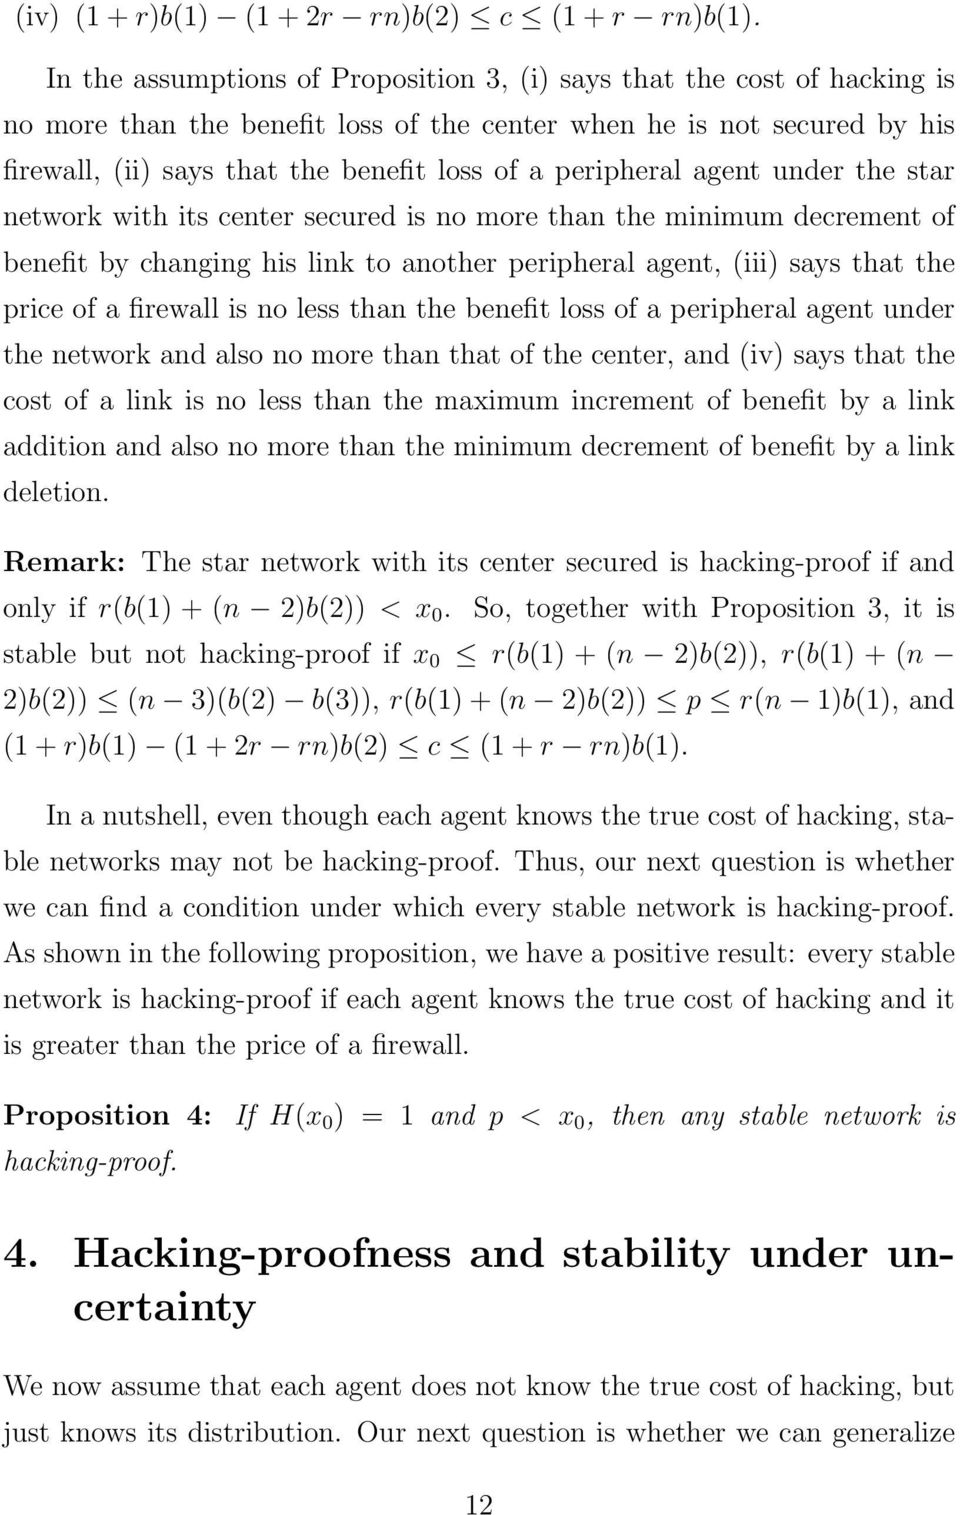 peripheral agent under the star network with its center secured is no more than the minimum decrement of benefit by changing his link to another peripheral agent, (iii) says that the price of a